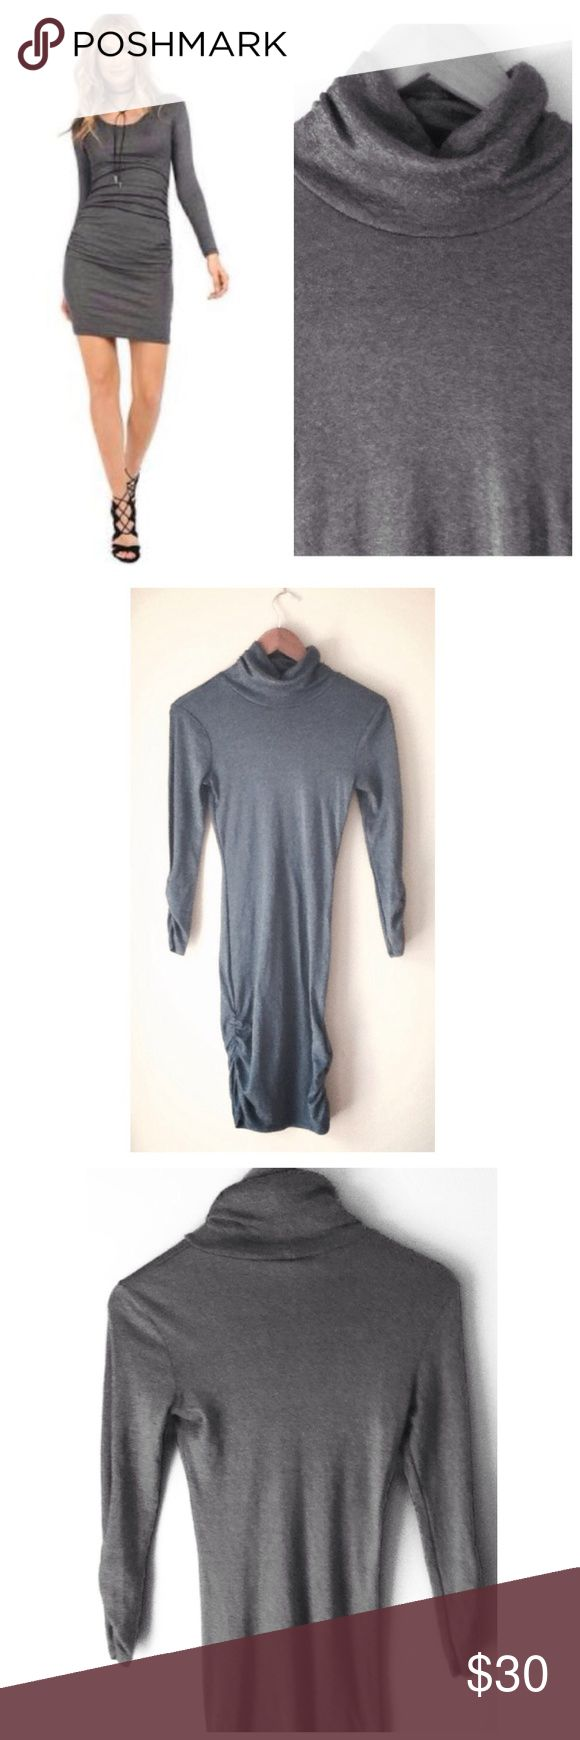 Michael Stars Shine Long Sleeve Turtleneck Dress Michael Stars Long Sleeve Turtleneck Dress. This dress is grey metallic with side gathering. The same as the cover photo except that this one is a turtleneck instead of a scoop neck. In great condition. and made from 58% cotton and 42% nylon. Great holiday dress!  One size fits all! 😄 Michael Stars Dresses Long Sleeve